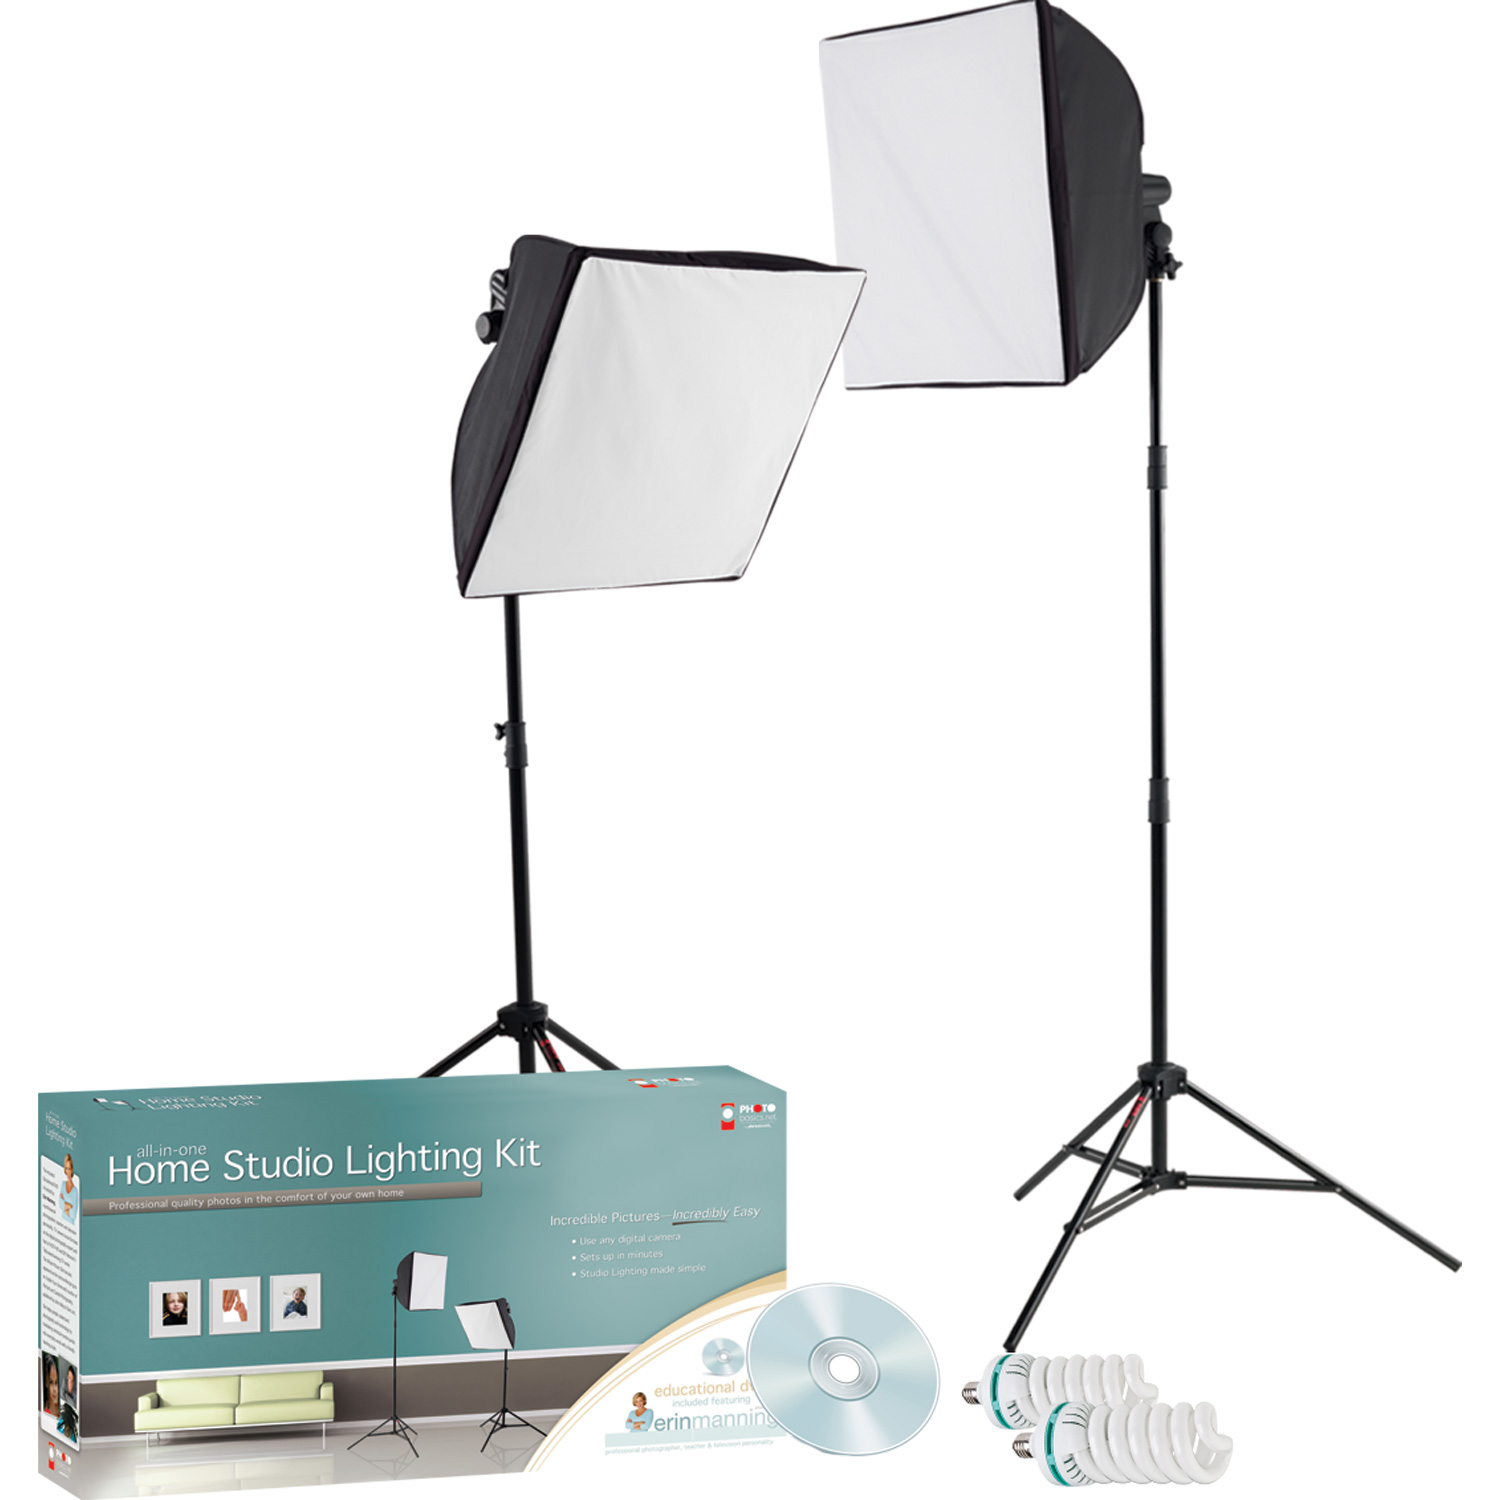 407 1 Real Deal Review: Home Studio Lighting Kit